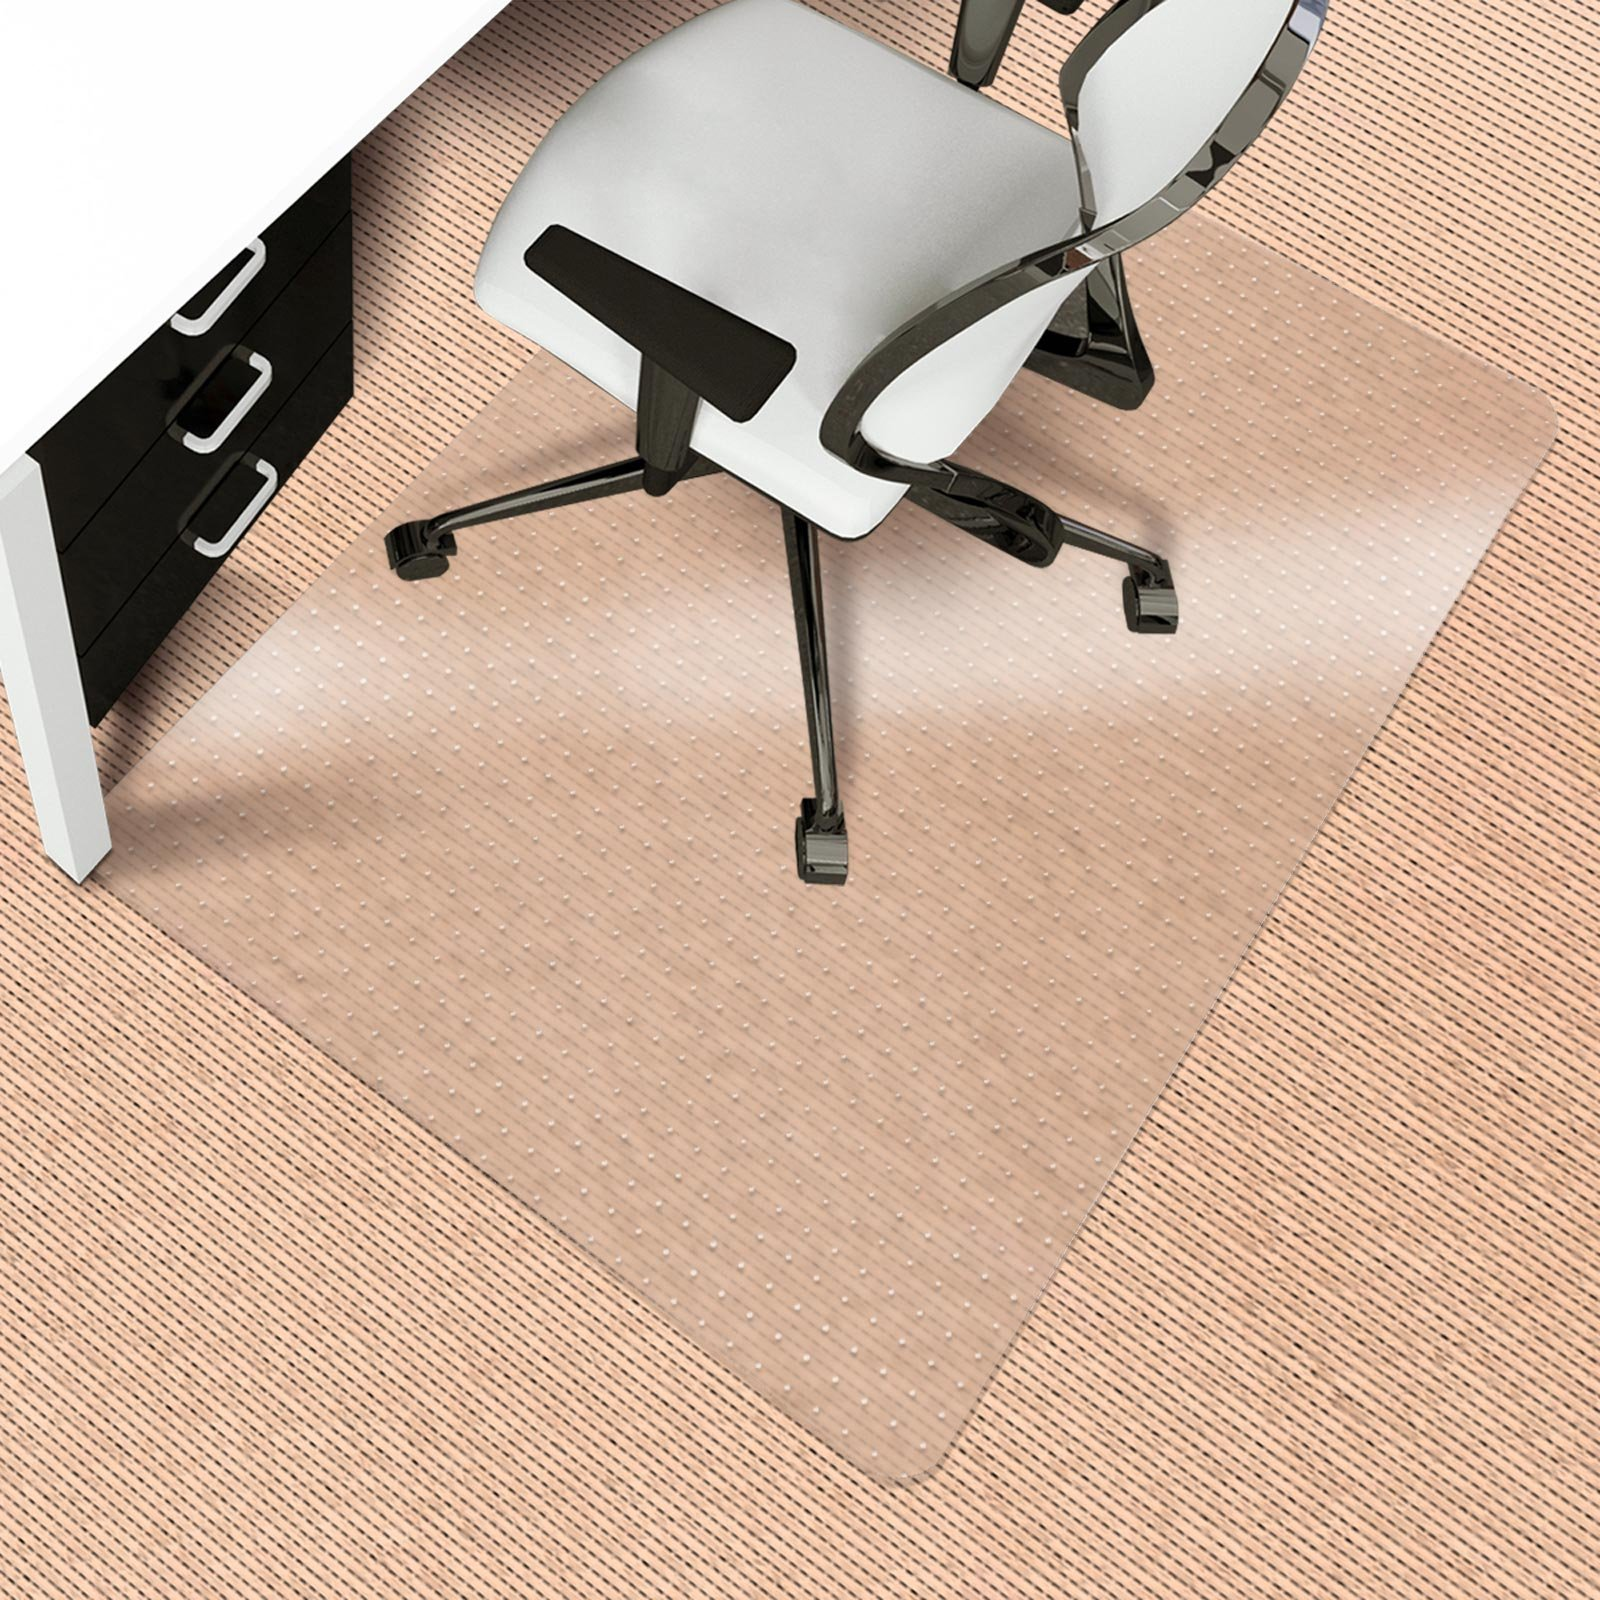 Office Chair Mat for Carpeted Floors | Desk Chair Mat for Carpet | Clear PVC Mat in Different Thicknesses and Sizes for Every Pile Type | Medium-Pile 36''x48'' by OfficeMarshal (Image #4)